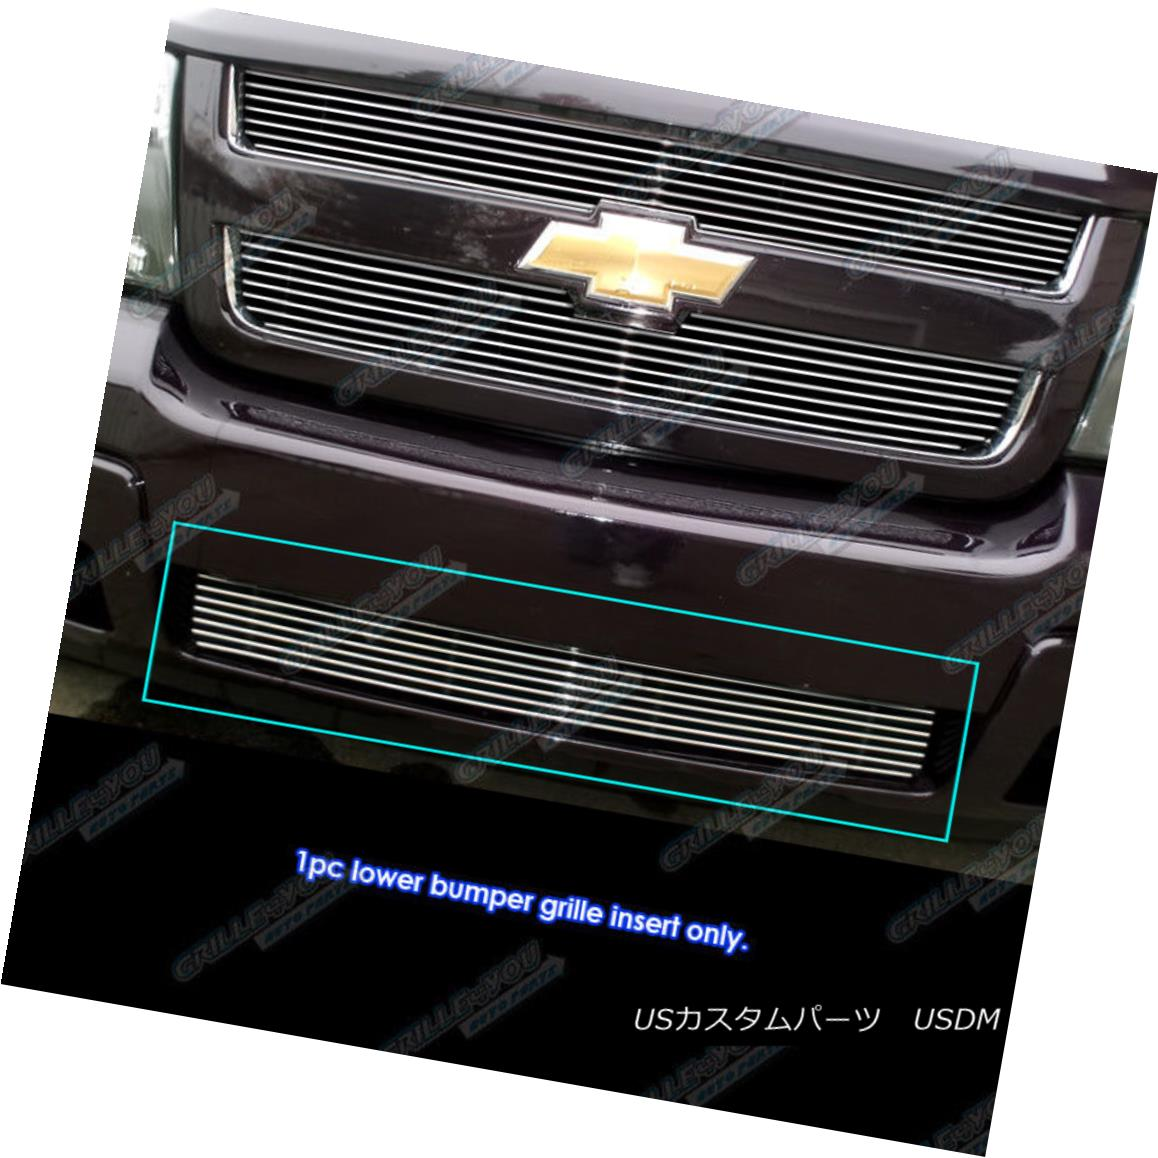 グリル Fits 06-09 Chevy Trailblazer LT Lower Bumper Billet Grille Insert フィット06-09 Chevy Trailblazer LTロワーバンパービレットグリルインサート